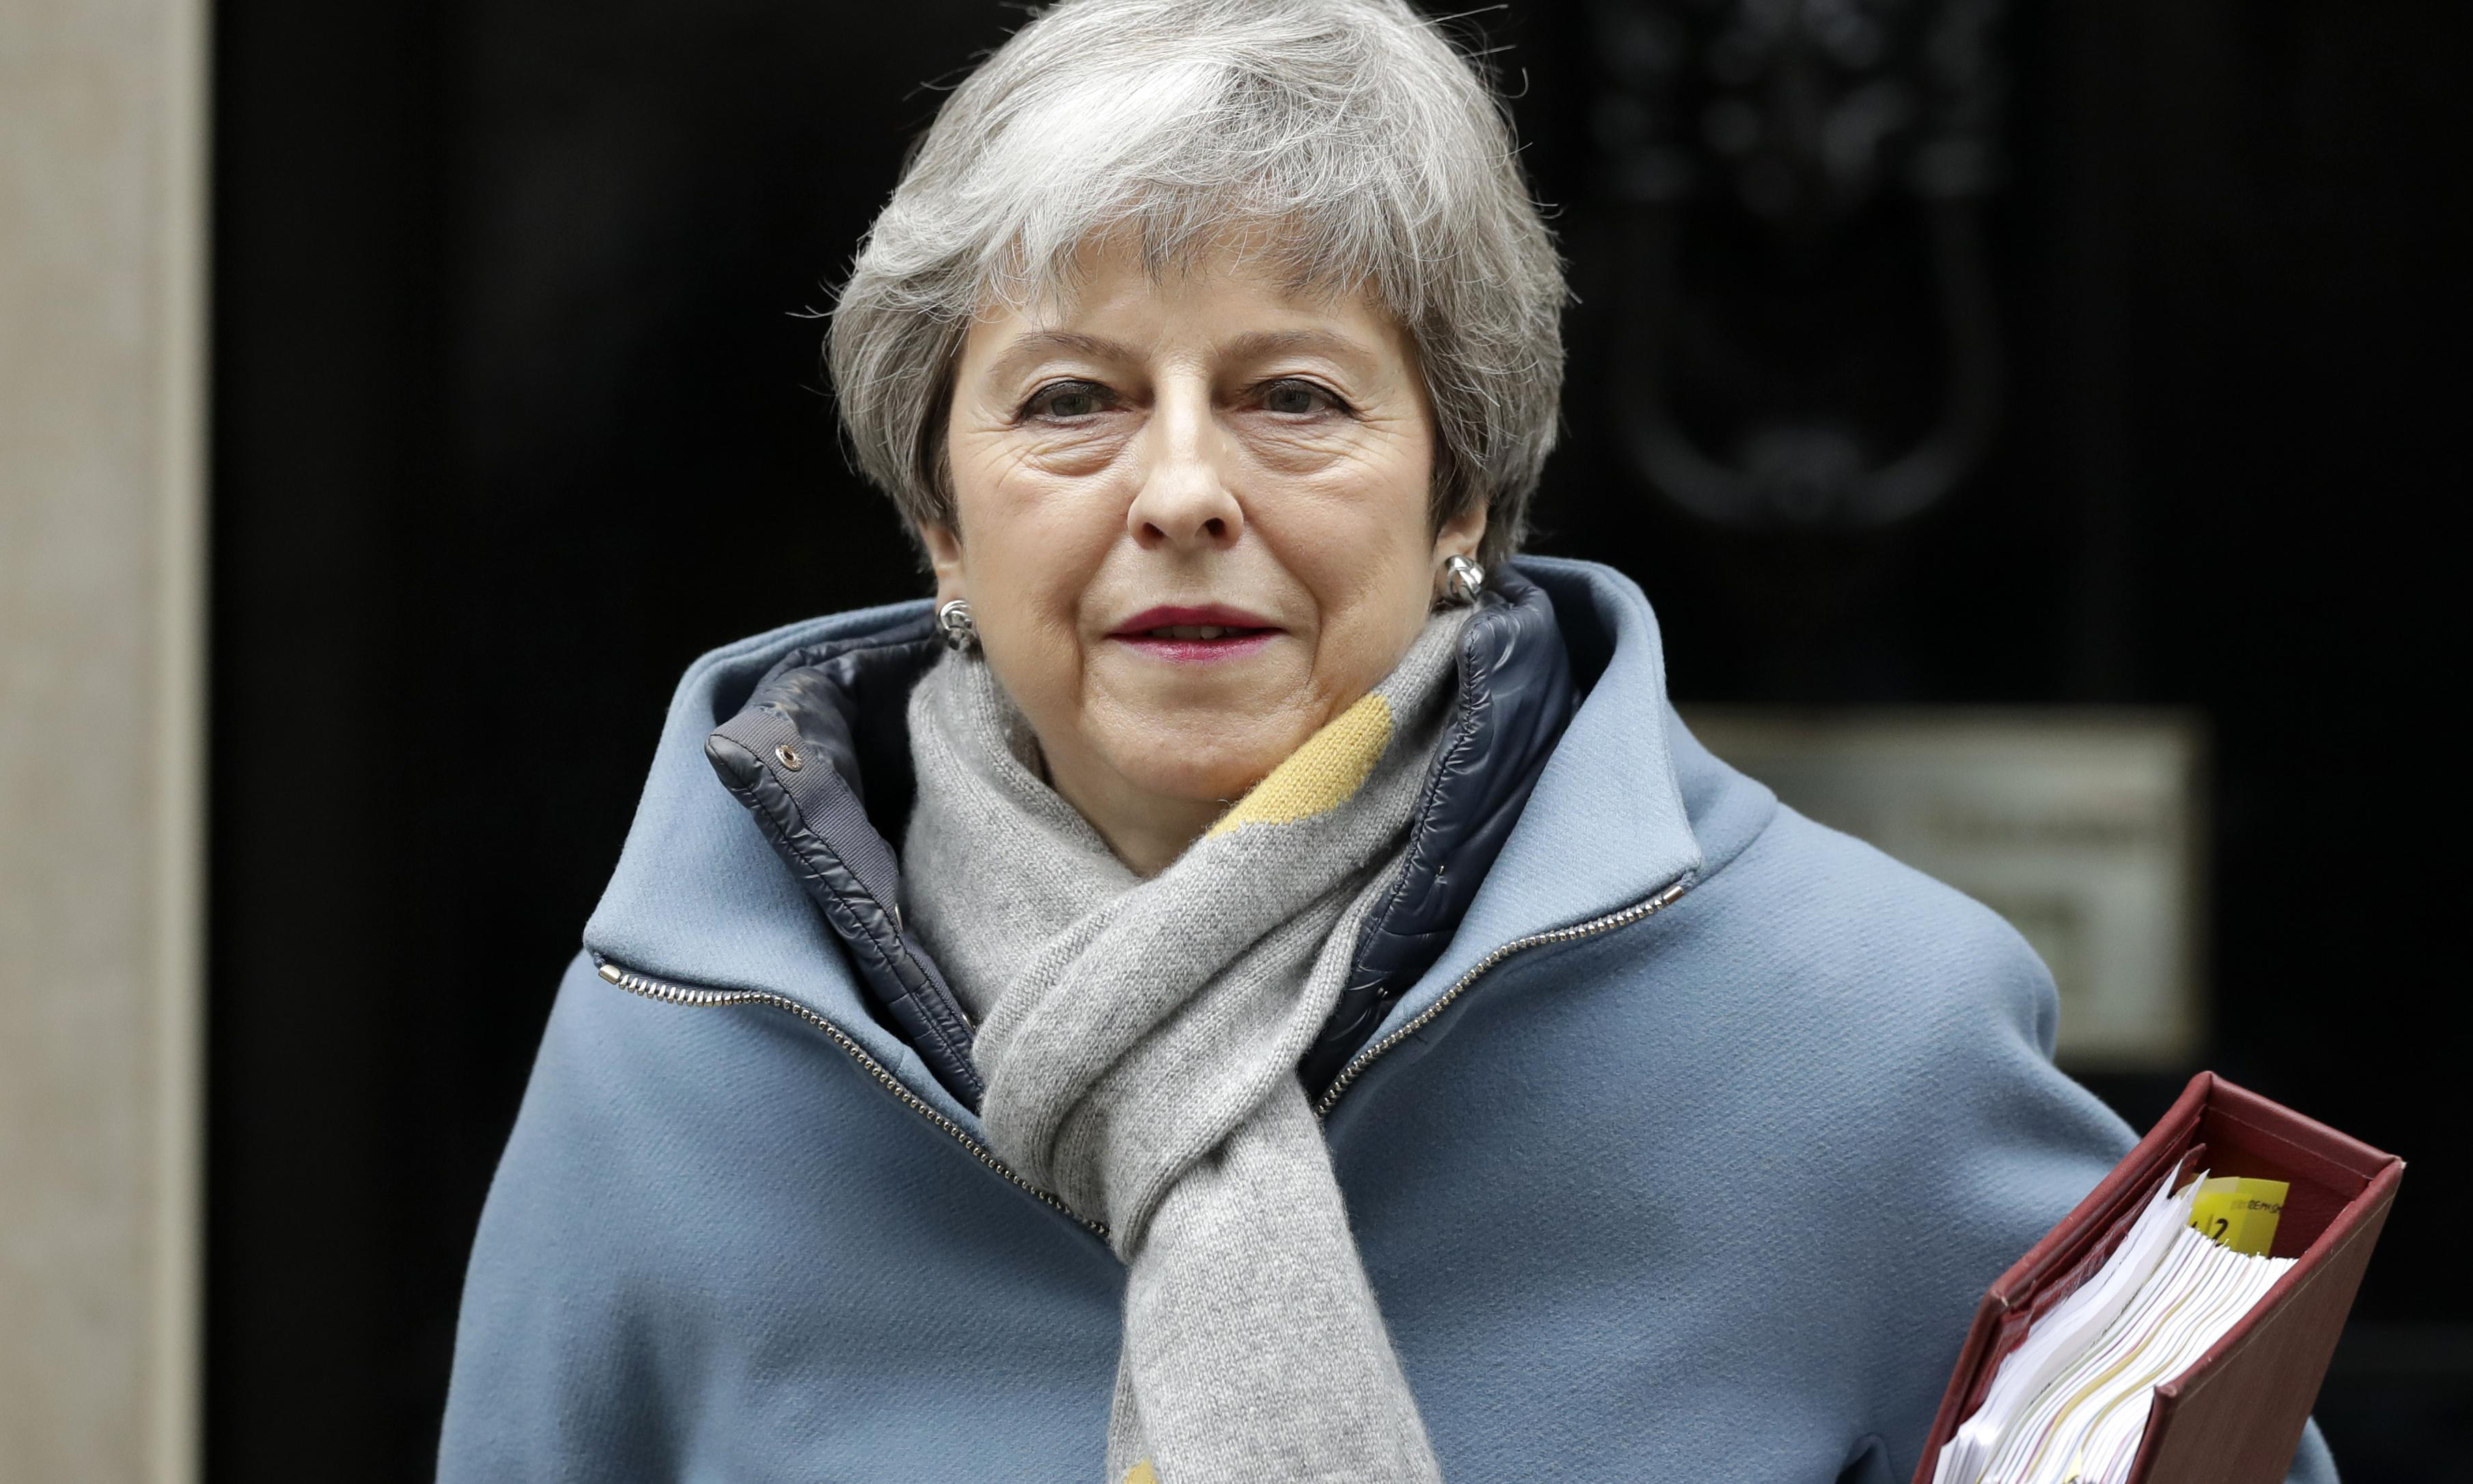 Theresa May is seeking a short Brexit delay – what happens next?